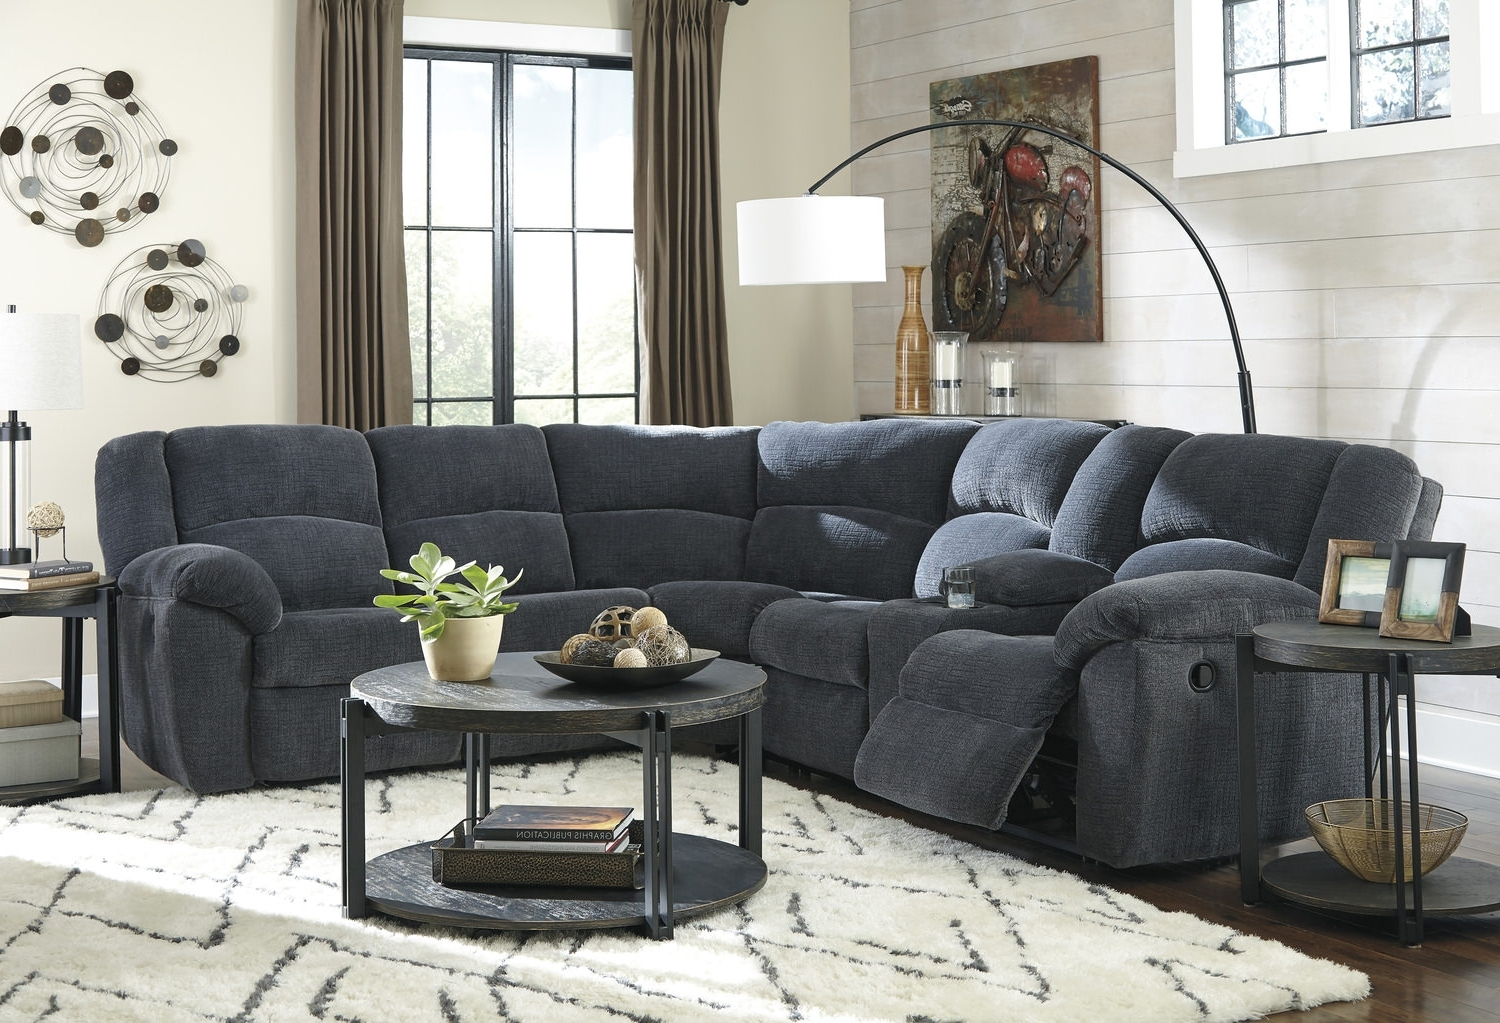 Most Popular Sectional Sofas – Living Room Seating – Hom Furniture Regarding Mn Sectional Sofas (View 16 of 20)